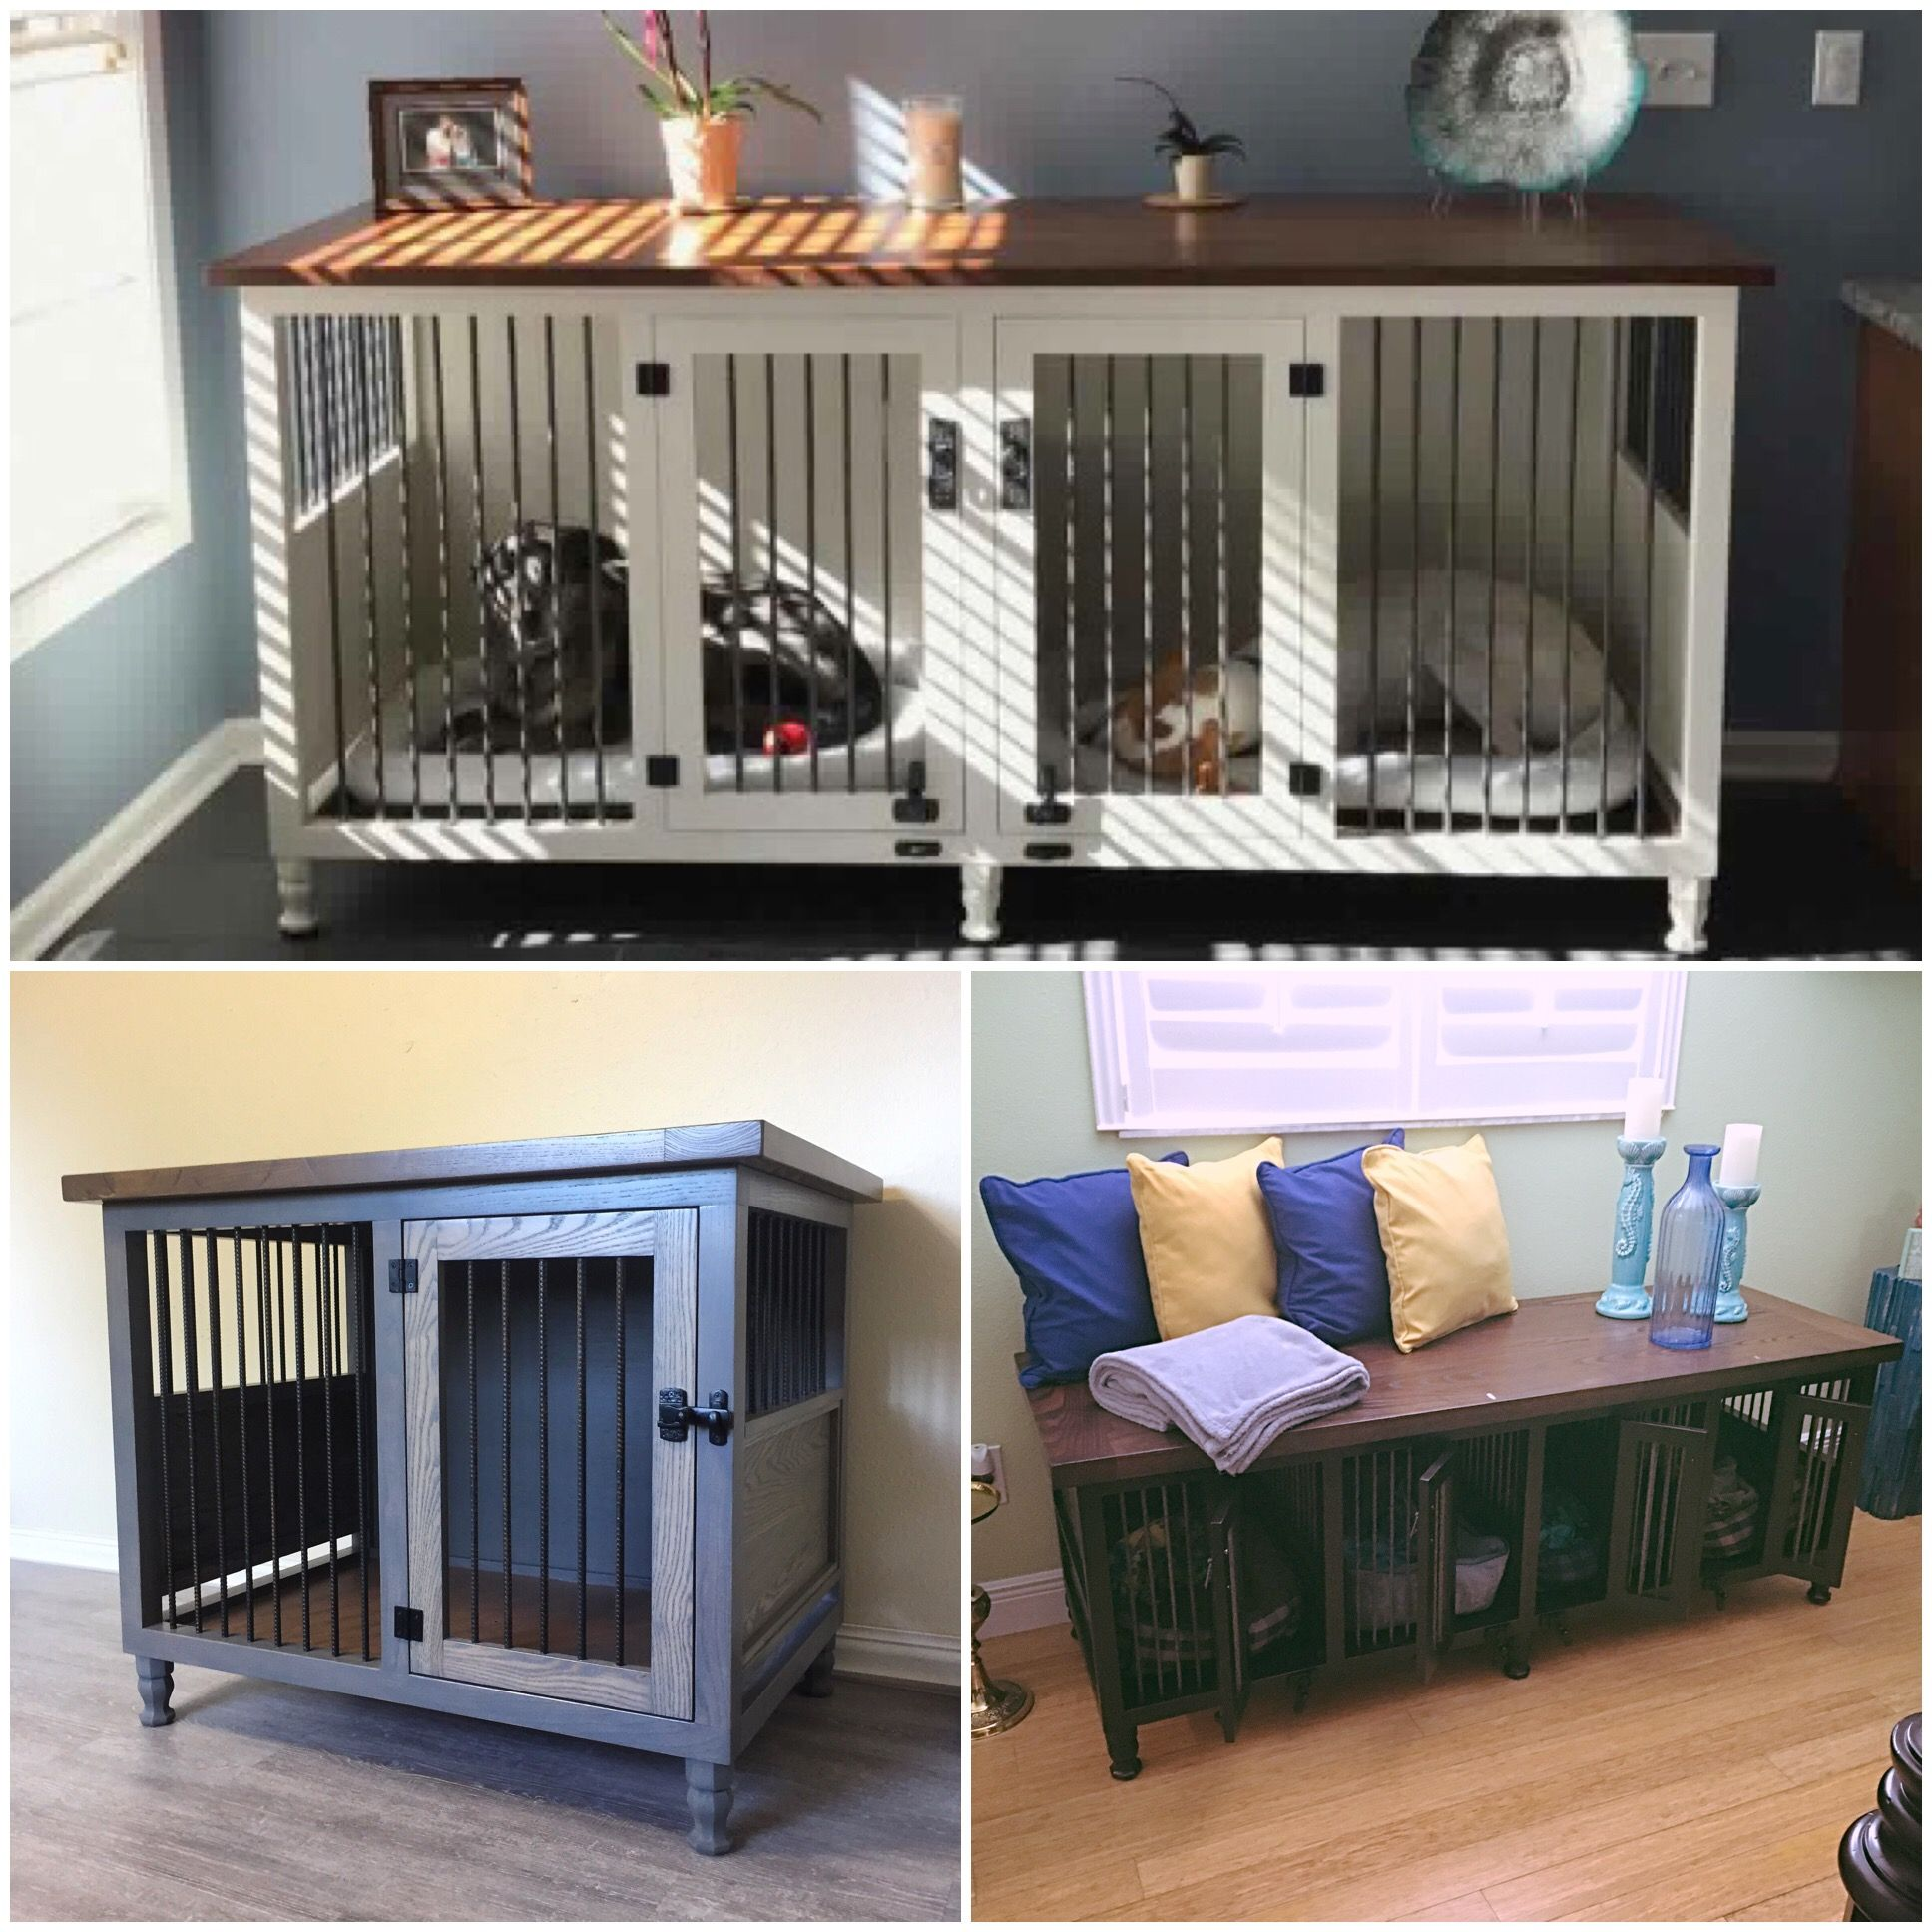 Double Dog Kennel Furniture: Dog Crate Furniture, Diy Dog